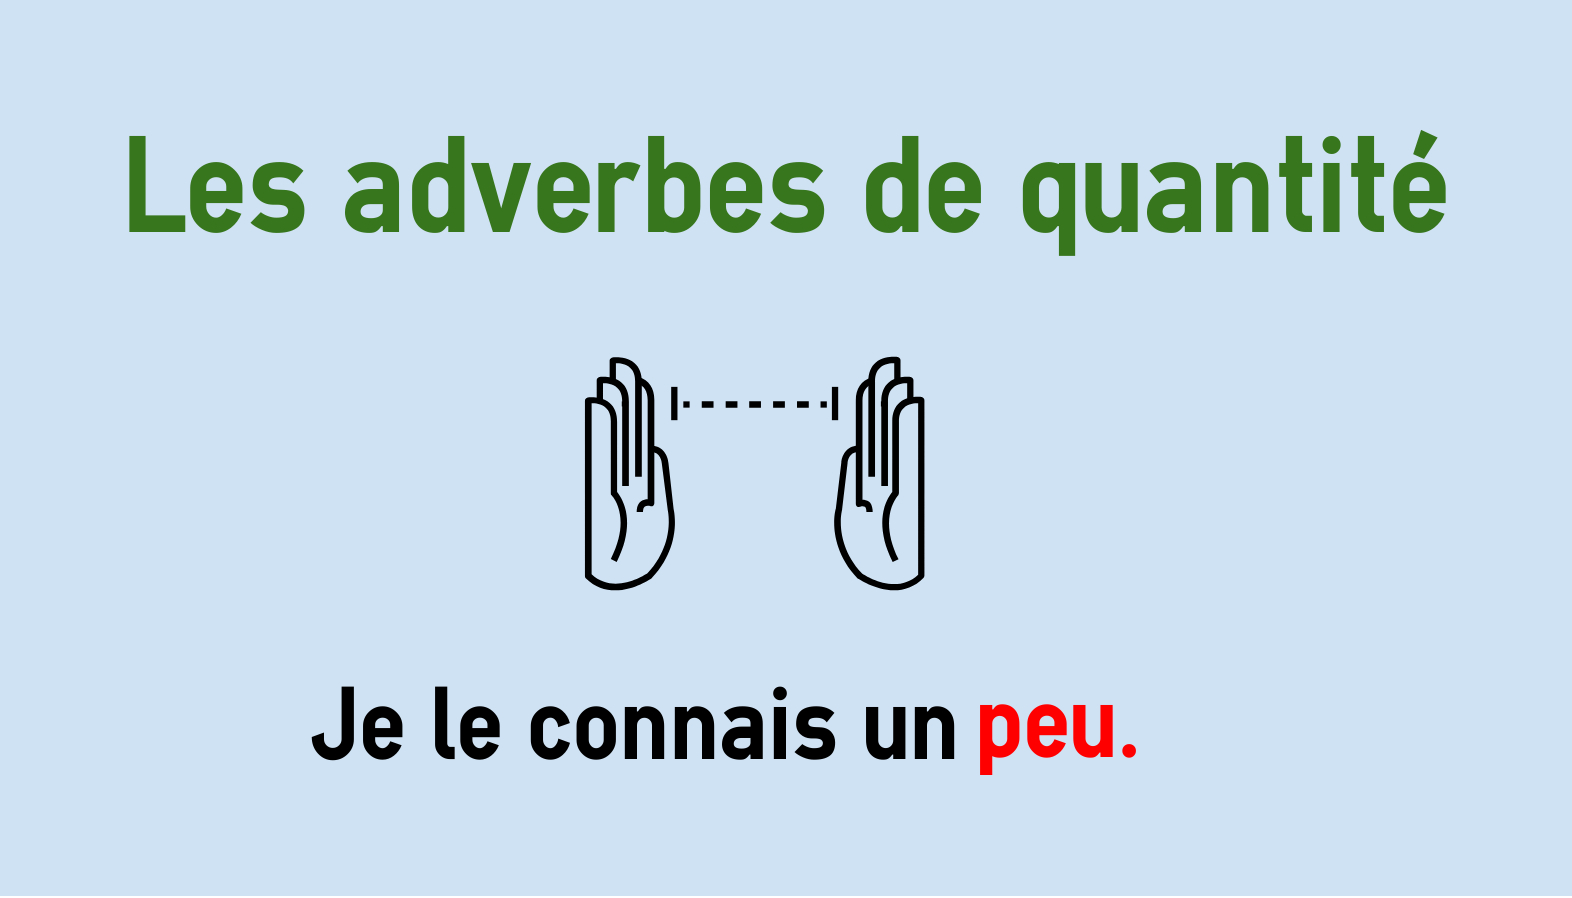 Adverbs Of Quantity In French